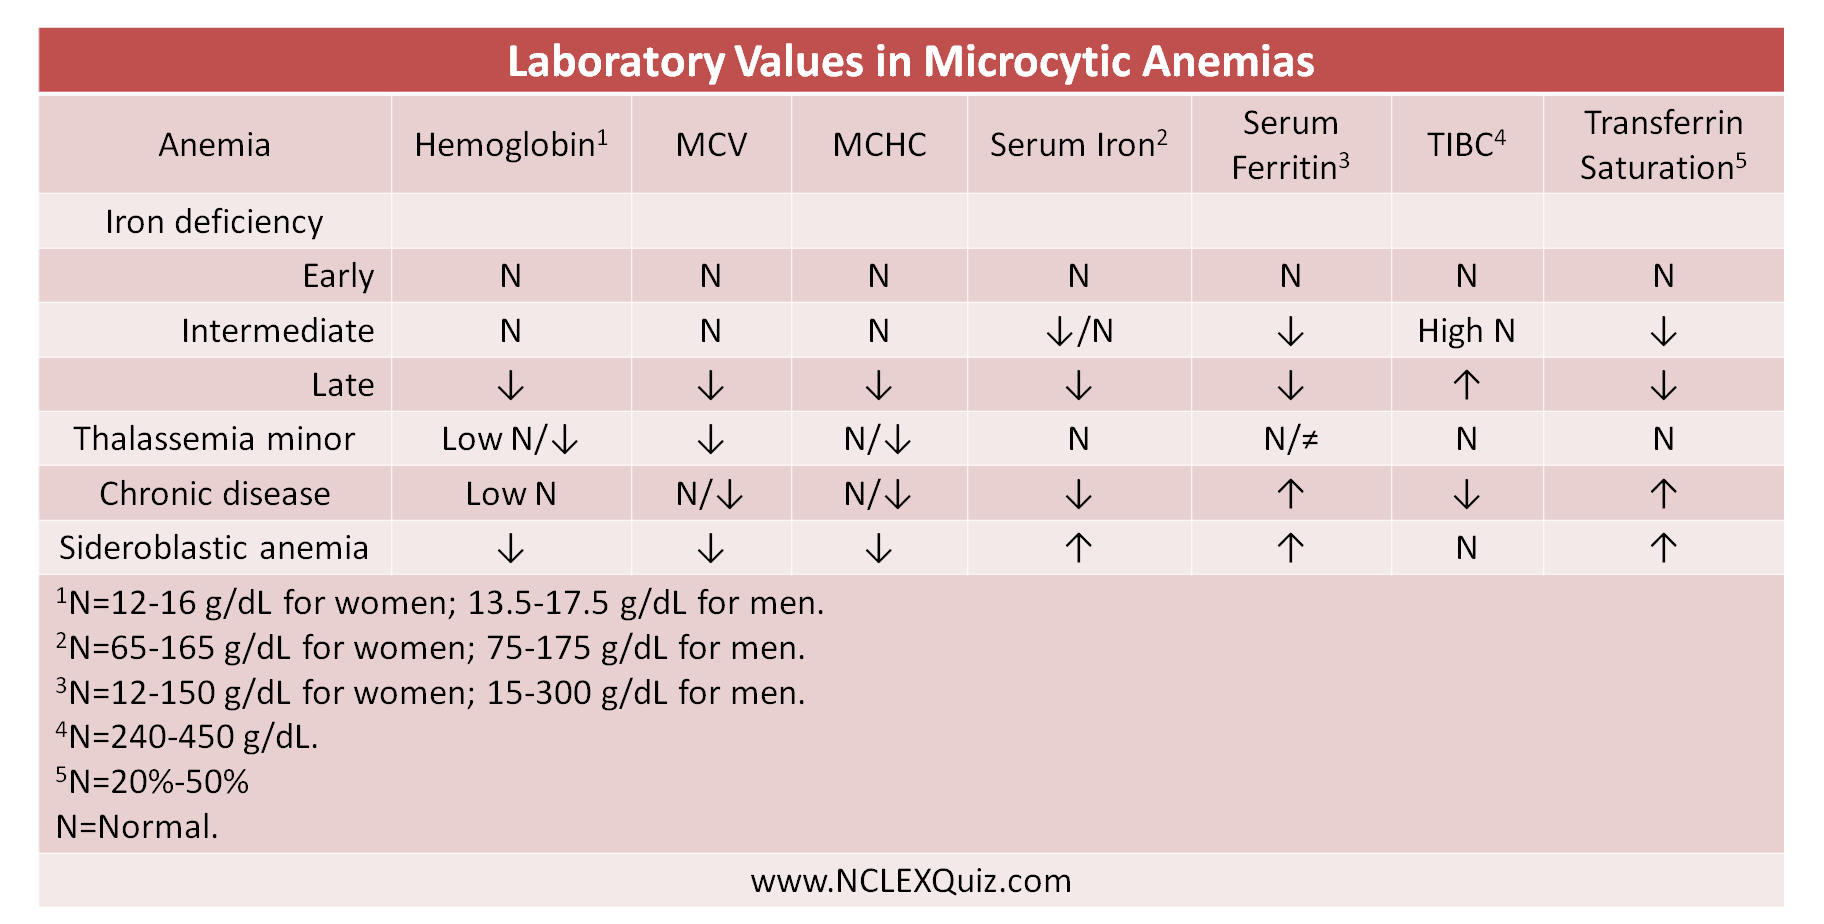 Laboratory Values In Microcytic Anemias Cheat Sheet